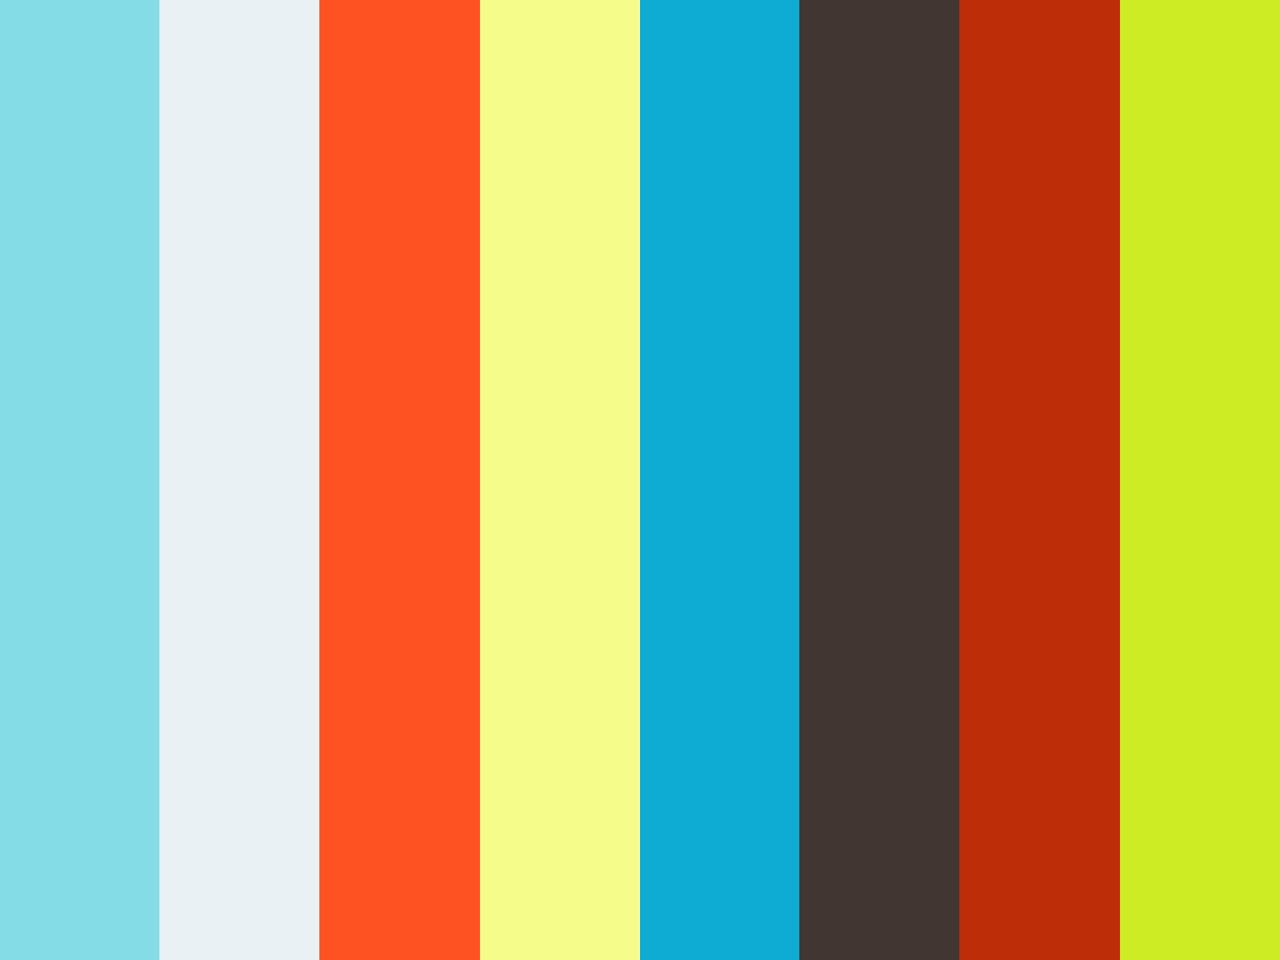 psychology college sydney essay chcker